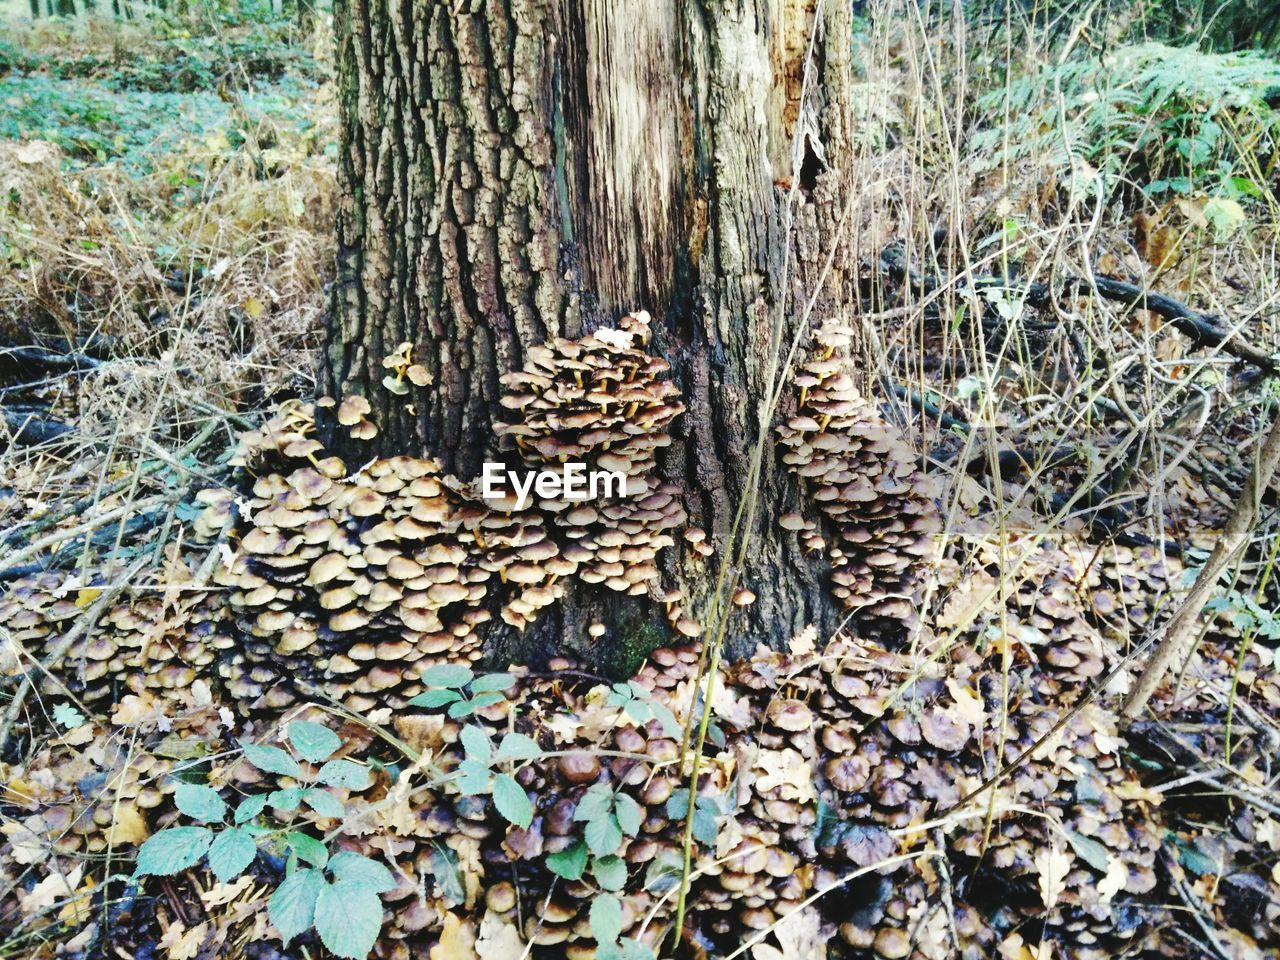 tree trunk, tree, abundance, day, nature, outdoors, forest, no people, close-up